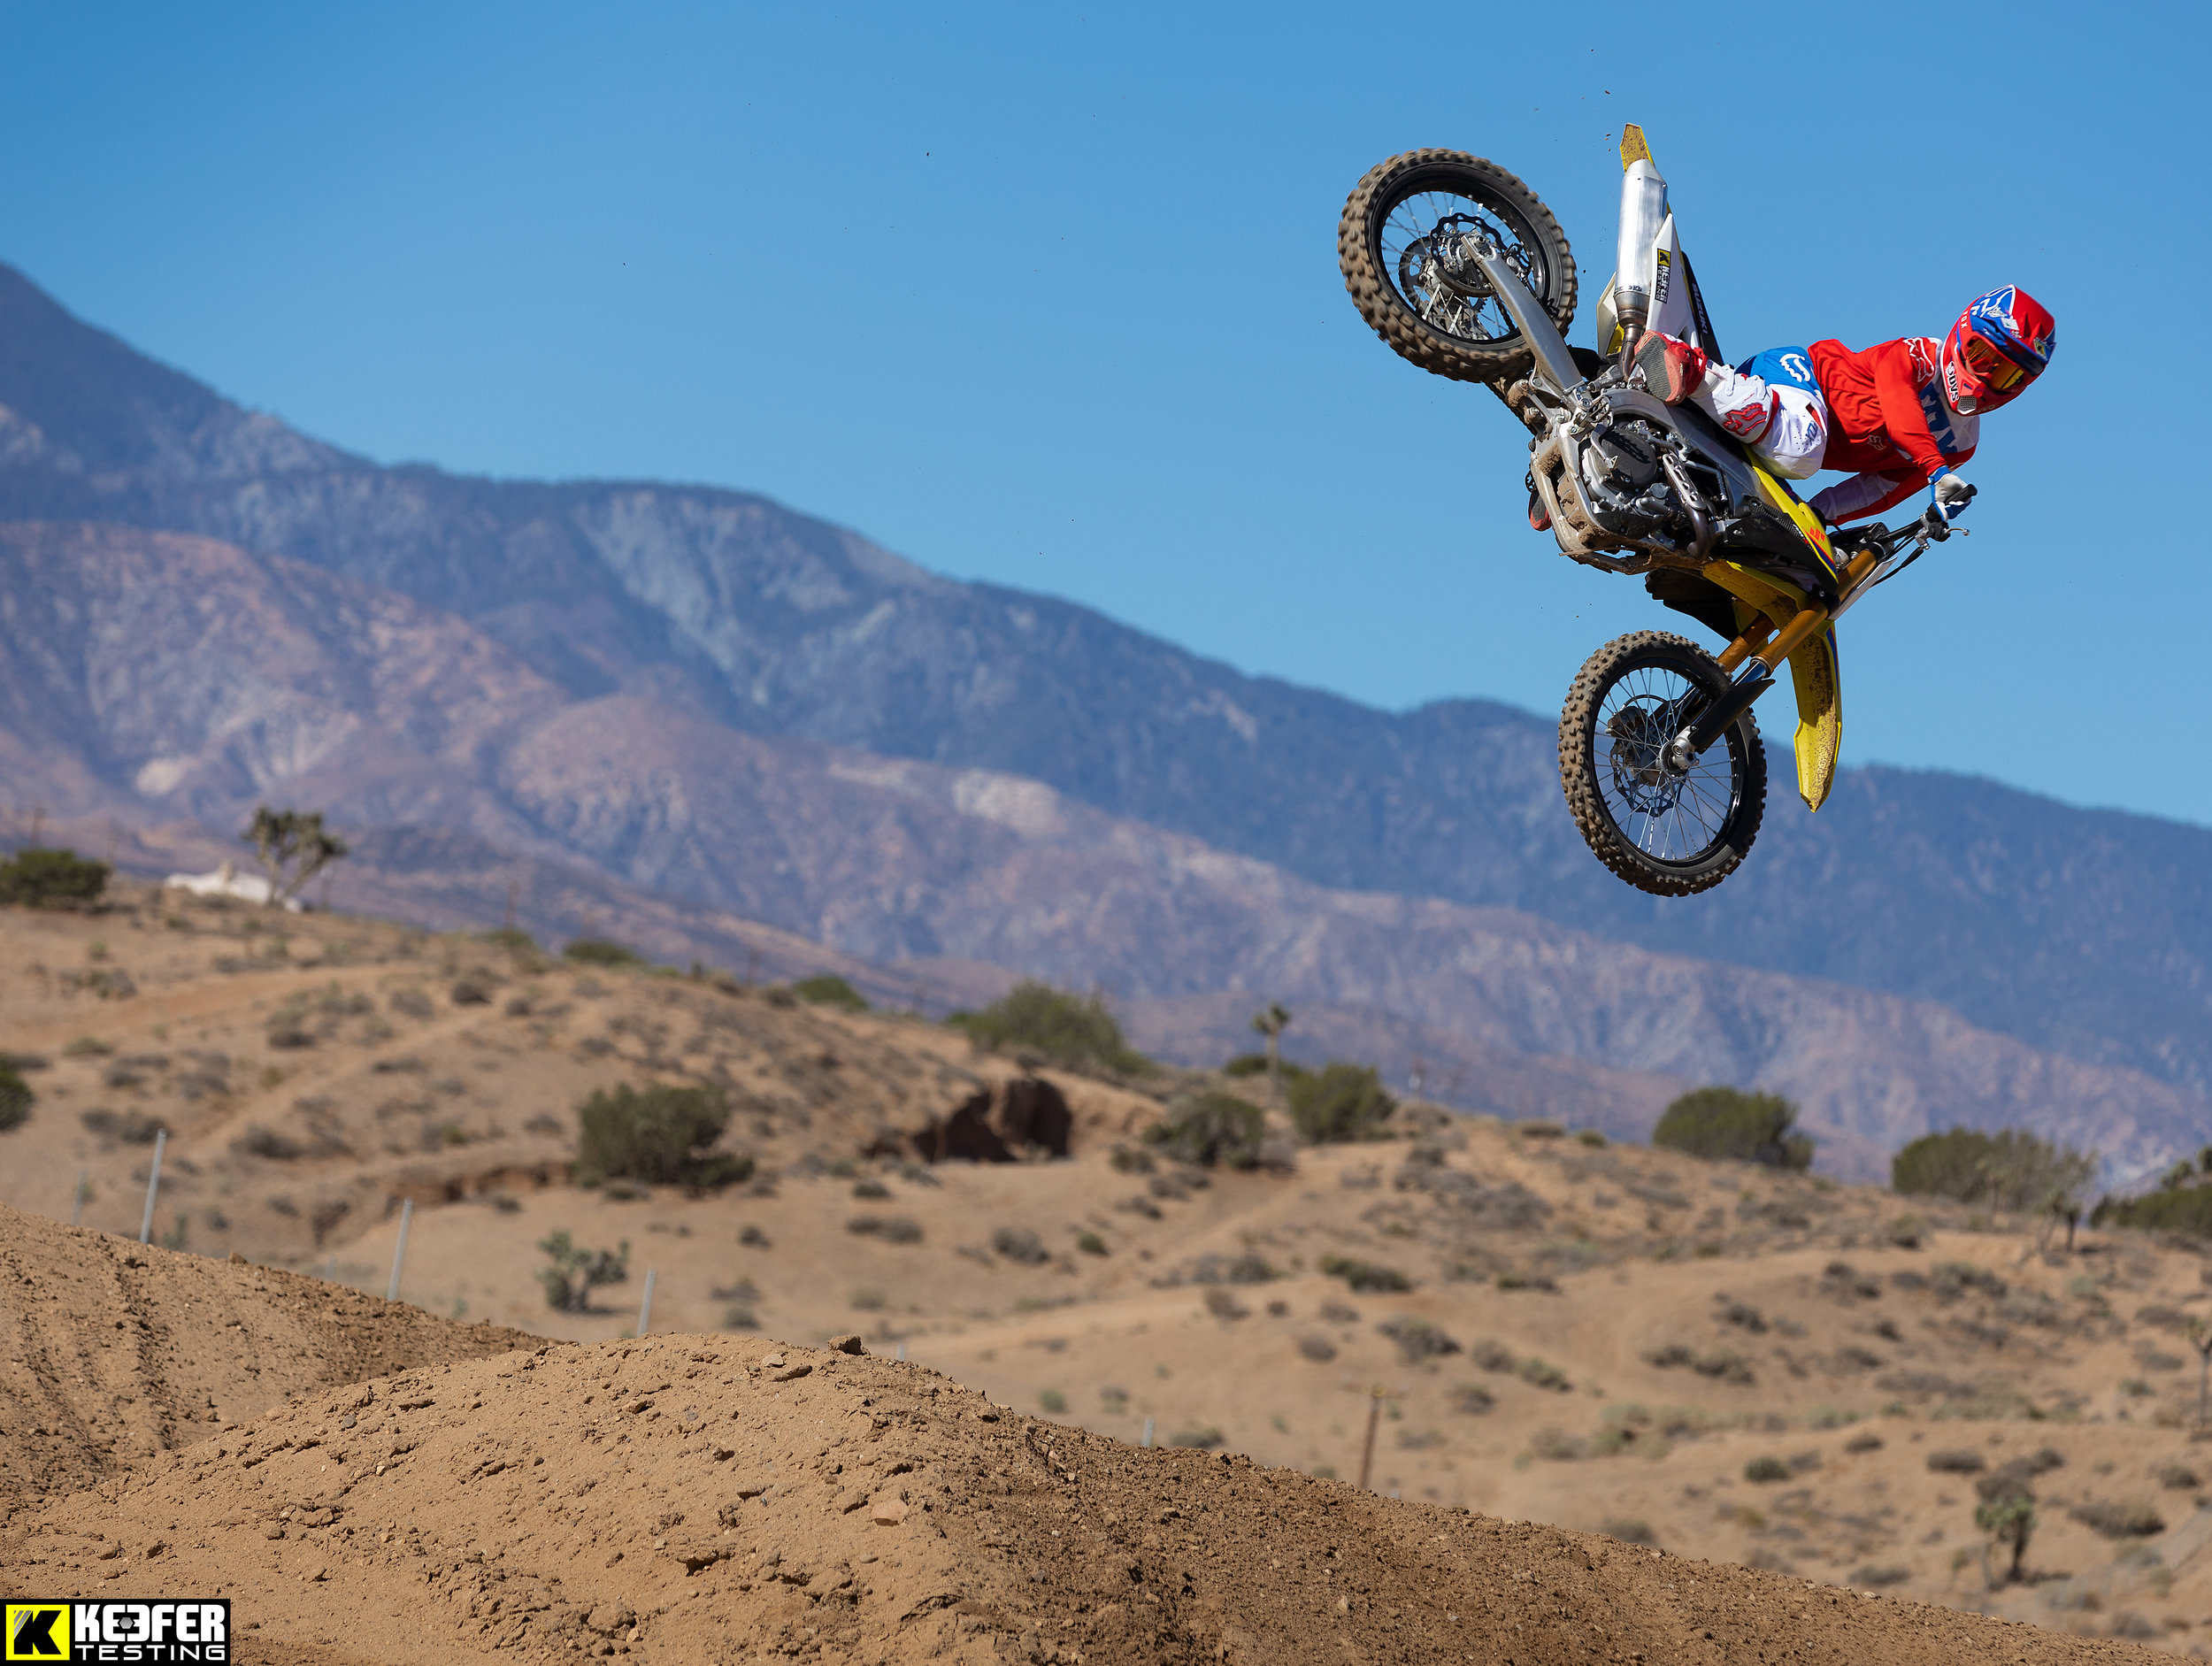 """The Suzuki RM-Z450 is the best looking bike out of the bunch. However, looks alone couldn't get the Suzuki up the charts in 2019, but the zook has improved slightly since last year. The BFRC shock still unloads (kicks) off throttle, which causes the rider to have a lot of pitching coming into corners. Most riders didn't mind the engine's delivery, but just wanted more from the powerplant (especially on deep tilled tracks). The white coupler was almost unanimously used by all riders which helps """"wake up"""" the bottom to mid range, but the Suzuki still signs off too quickly up top. The cornering of the RM-Z450 is still great, but other machines are as good, if not better than the Suzuki for 2019. This bike would be great for a rider who wants to spend less money and still have a good bike to go race/ride on the weekends. Small modifications can really help the Suzuki become a better machine. In fact, we will be doing a project 2019 RM-Z450 this year, so stay tuned!"""